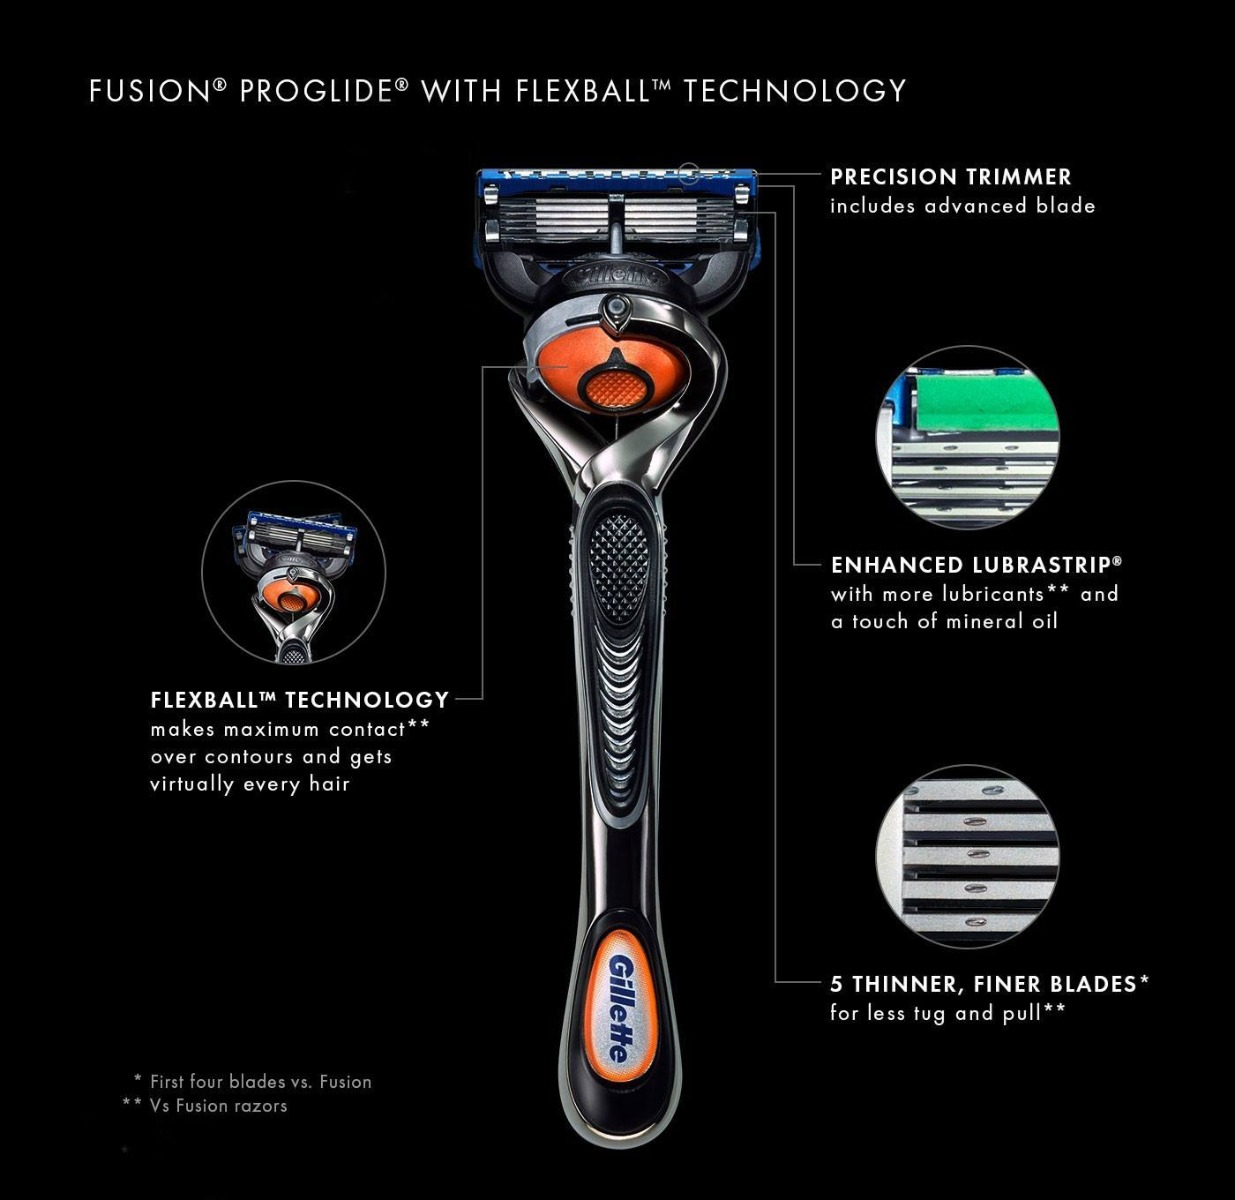 Gillette-Flexball-Glide-Gift-Pack/